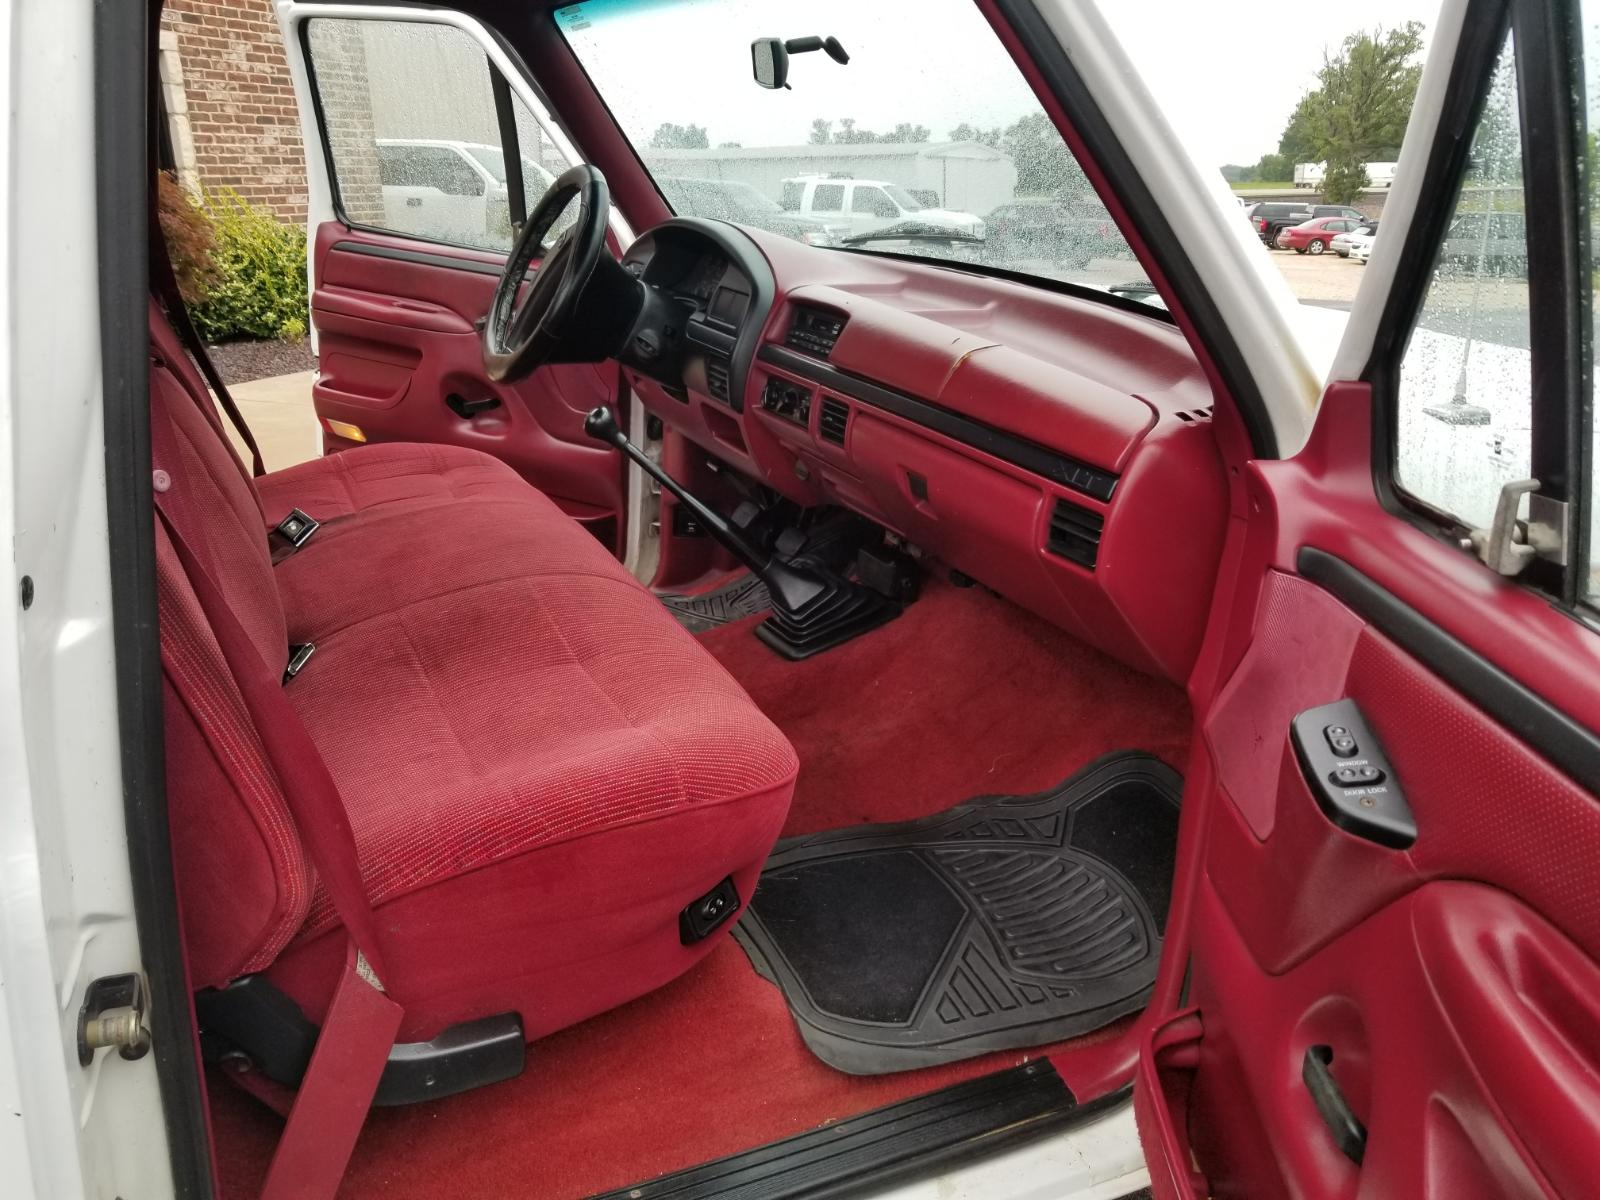 Miraculous Ford F250 Pickup Front Seat Used Truck Parts Machost Co Dining Chair Design Ideas Machostcouk